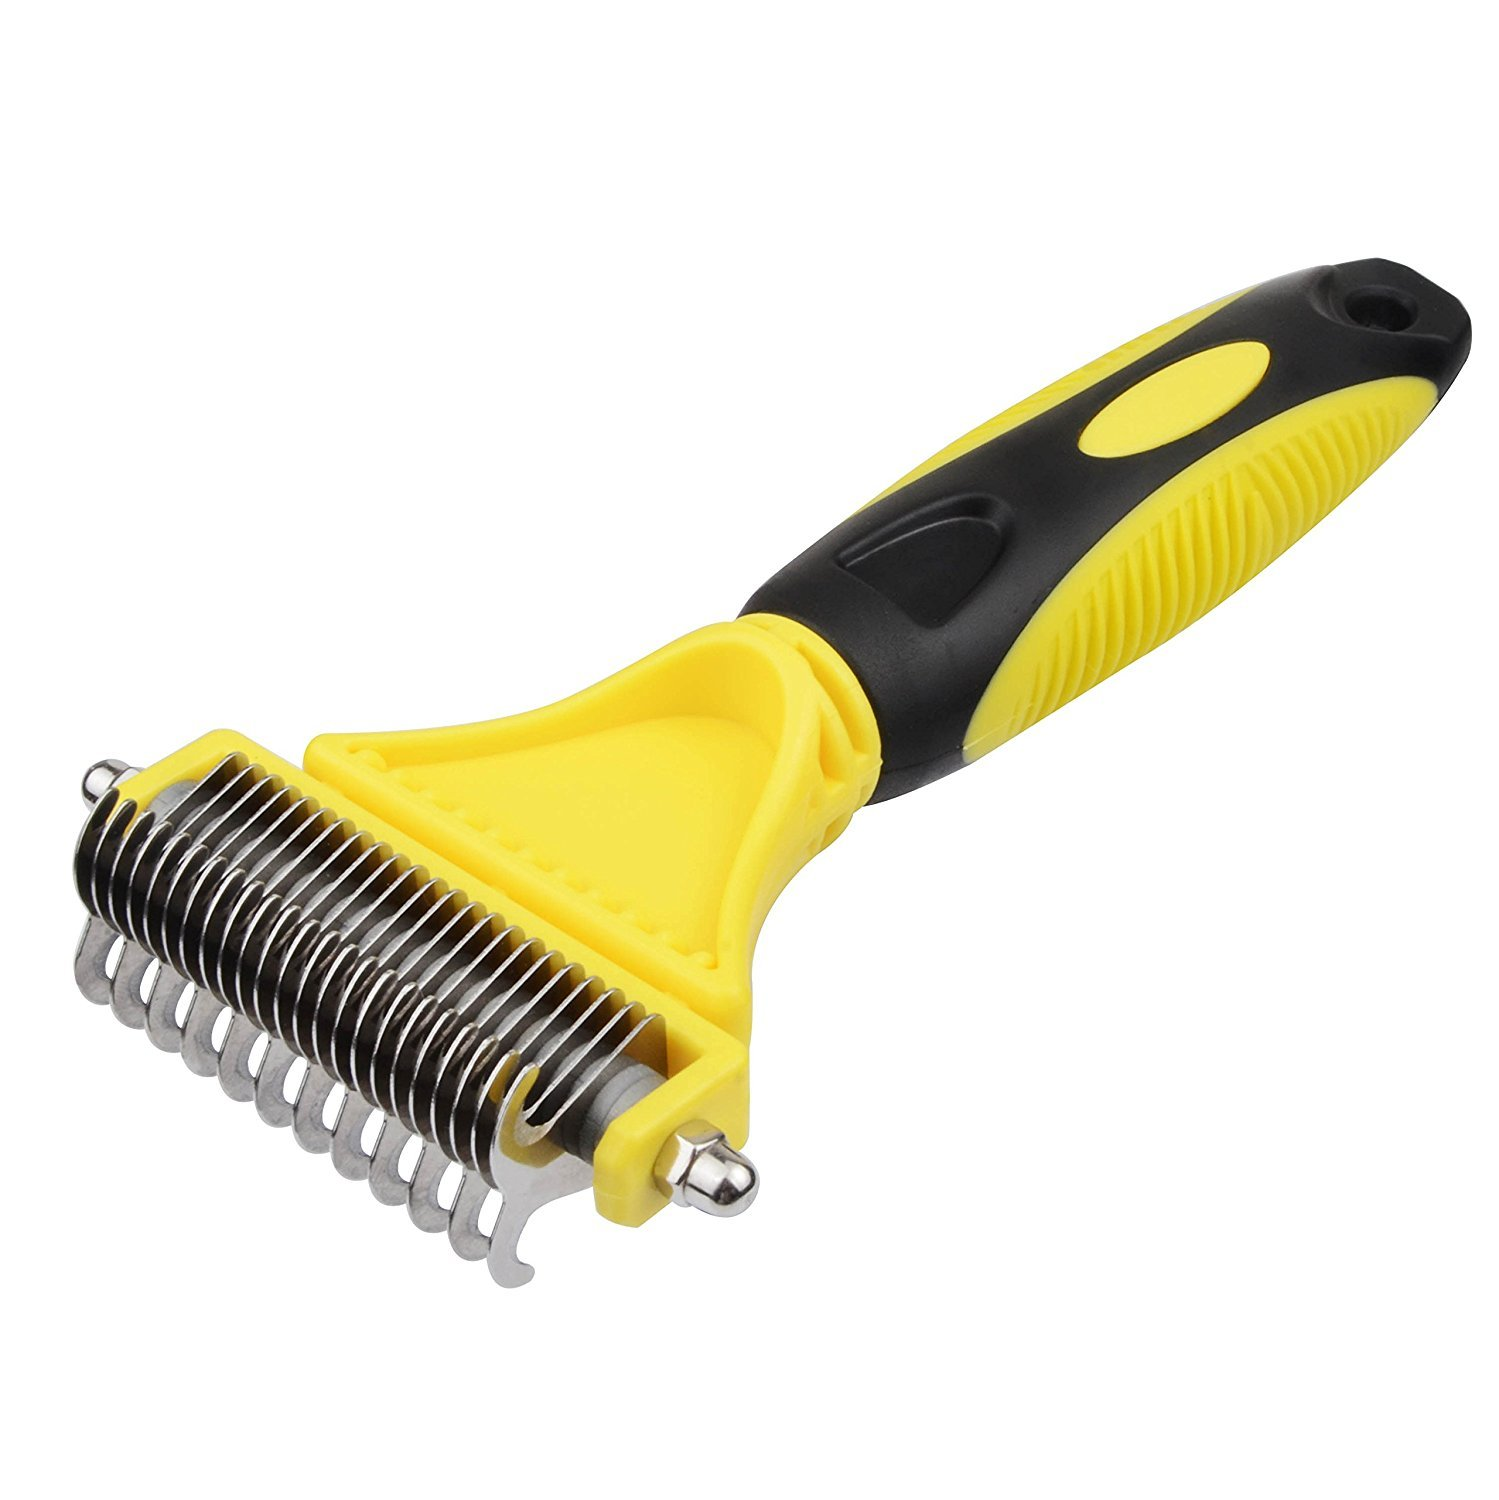 Preself Pet Dematting Comb ,Grooming Brush Tool for Dogs and Cats,2 Sided Steel Rake Brush for Small Medium and Large Breeds with Medium and Long Hair